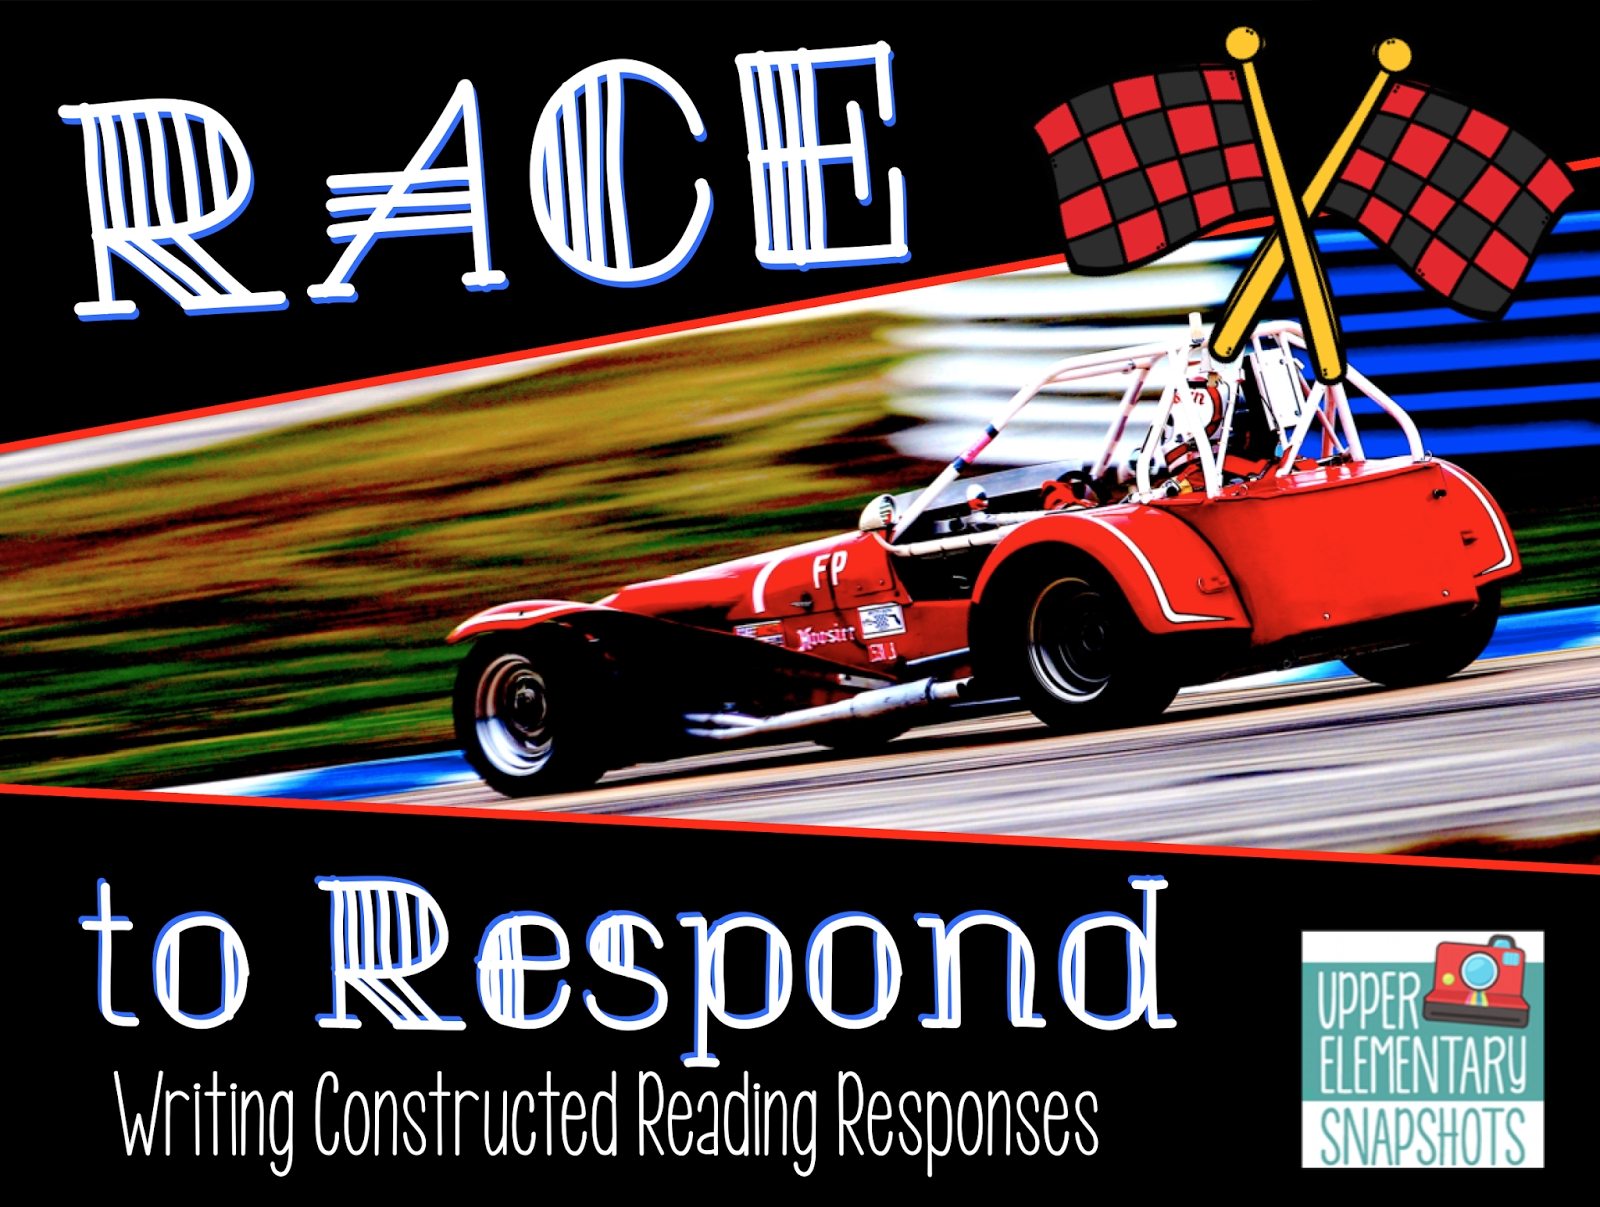 Upper Elementary Snapshots Race To Respond To Reading